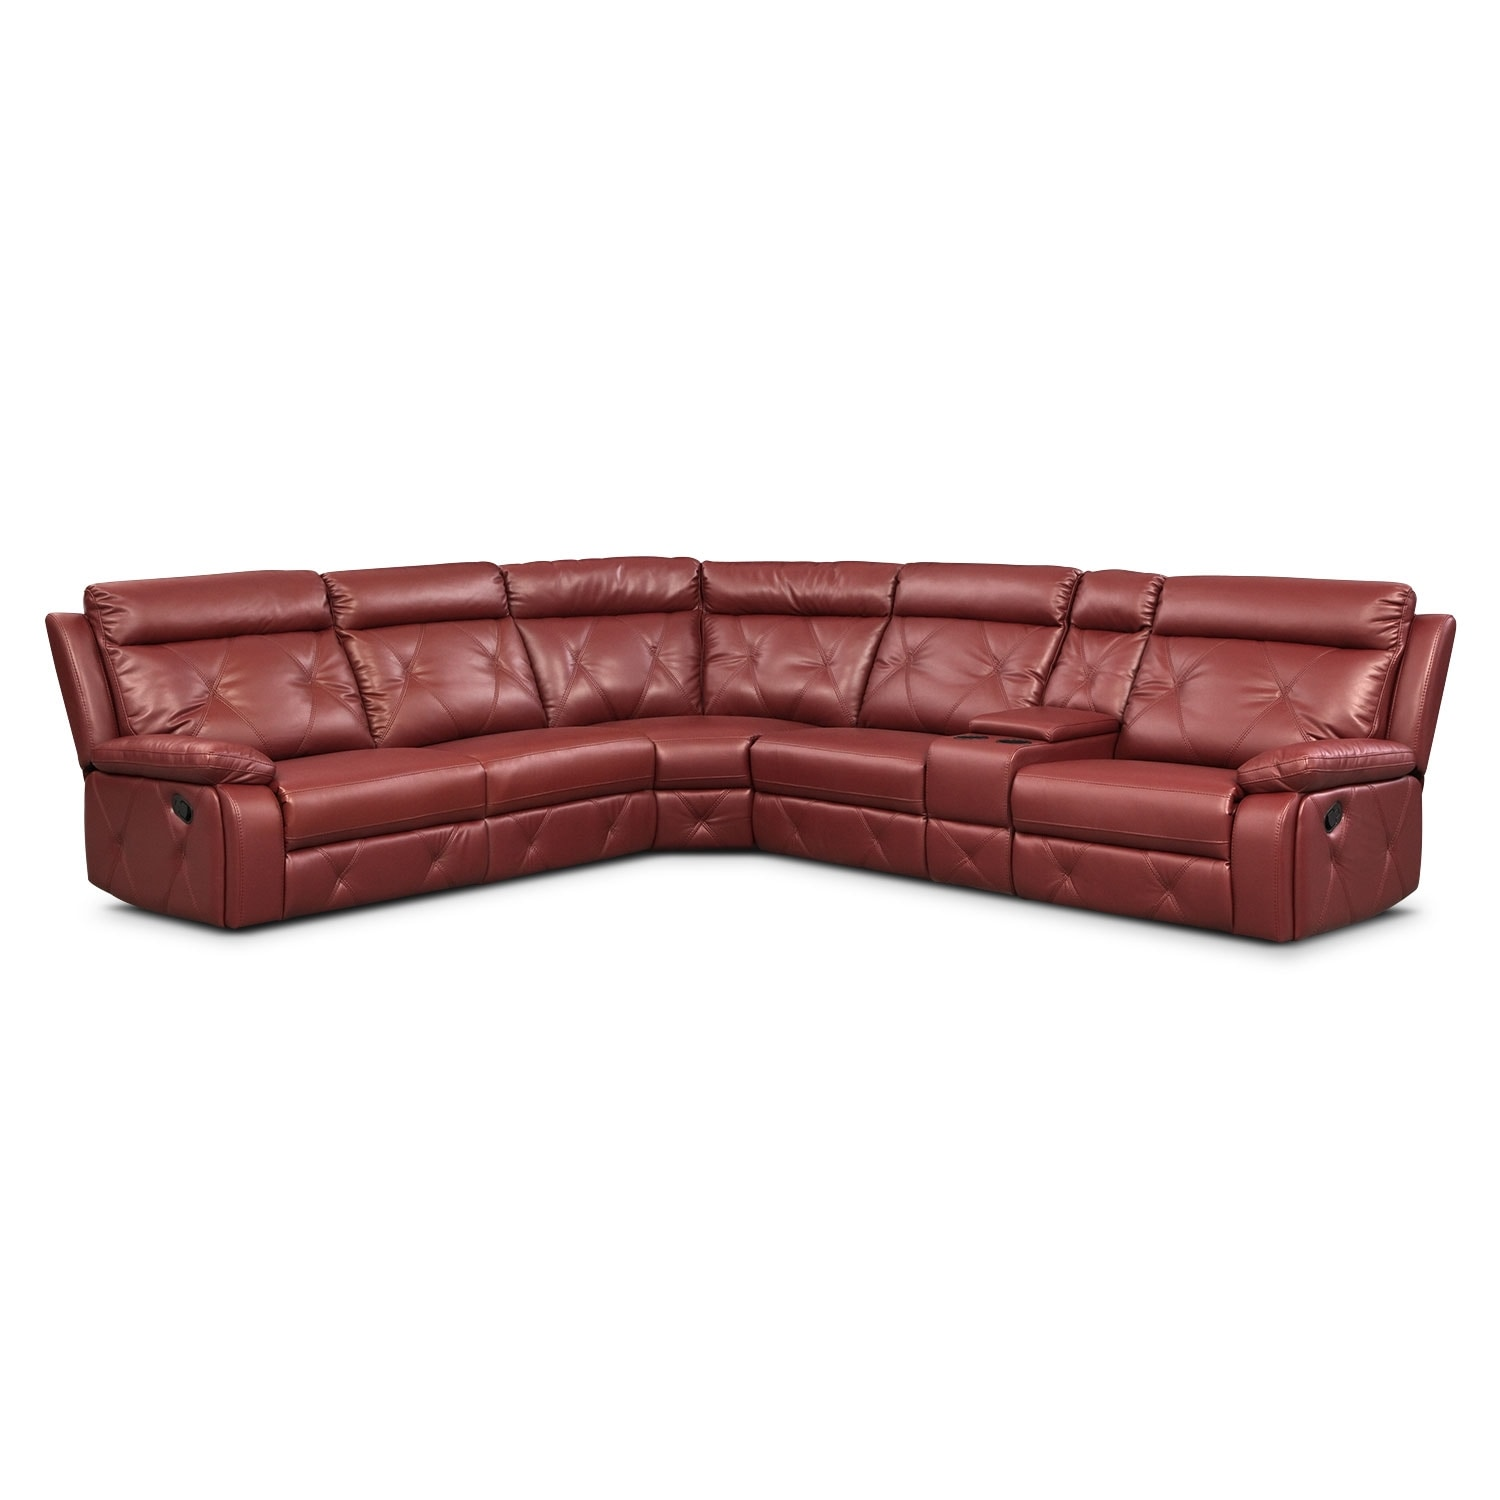 Dante Red 6 Pc. Reclining Sectional w/ 3 Reclining Seats